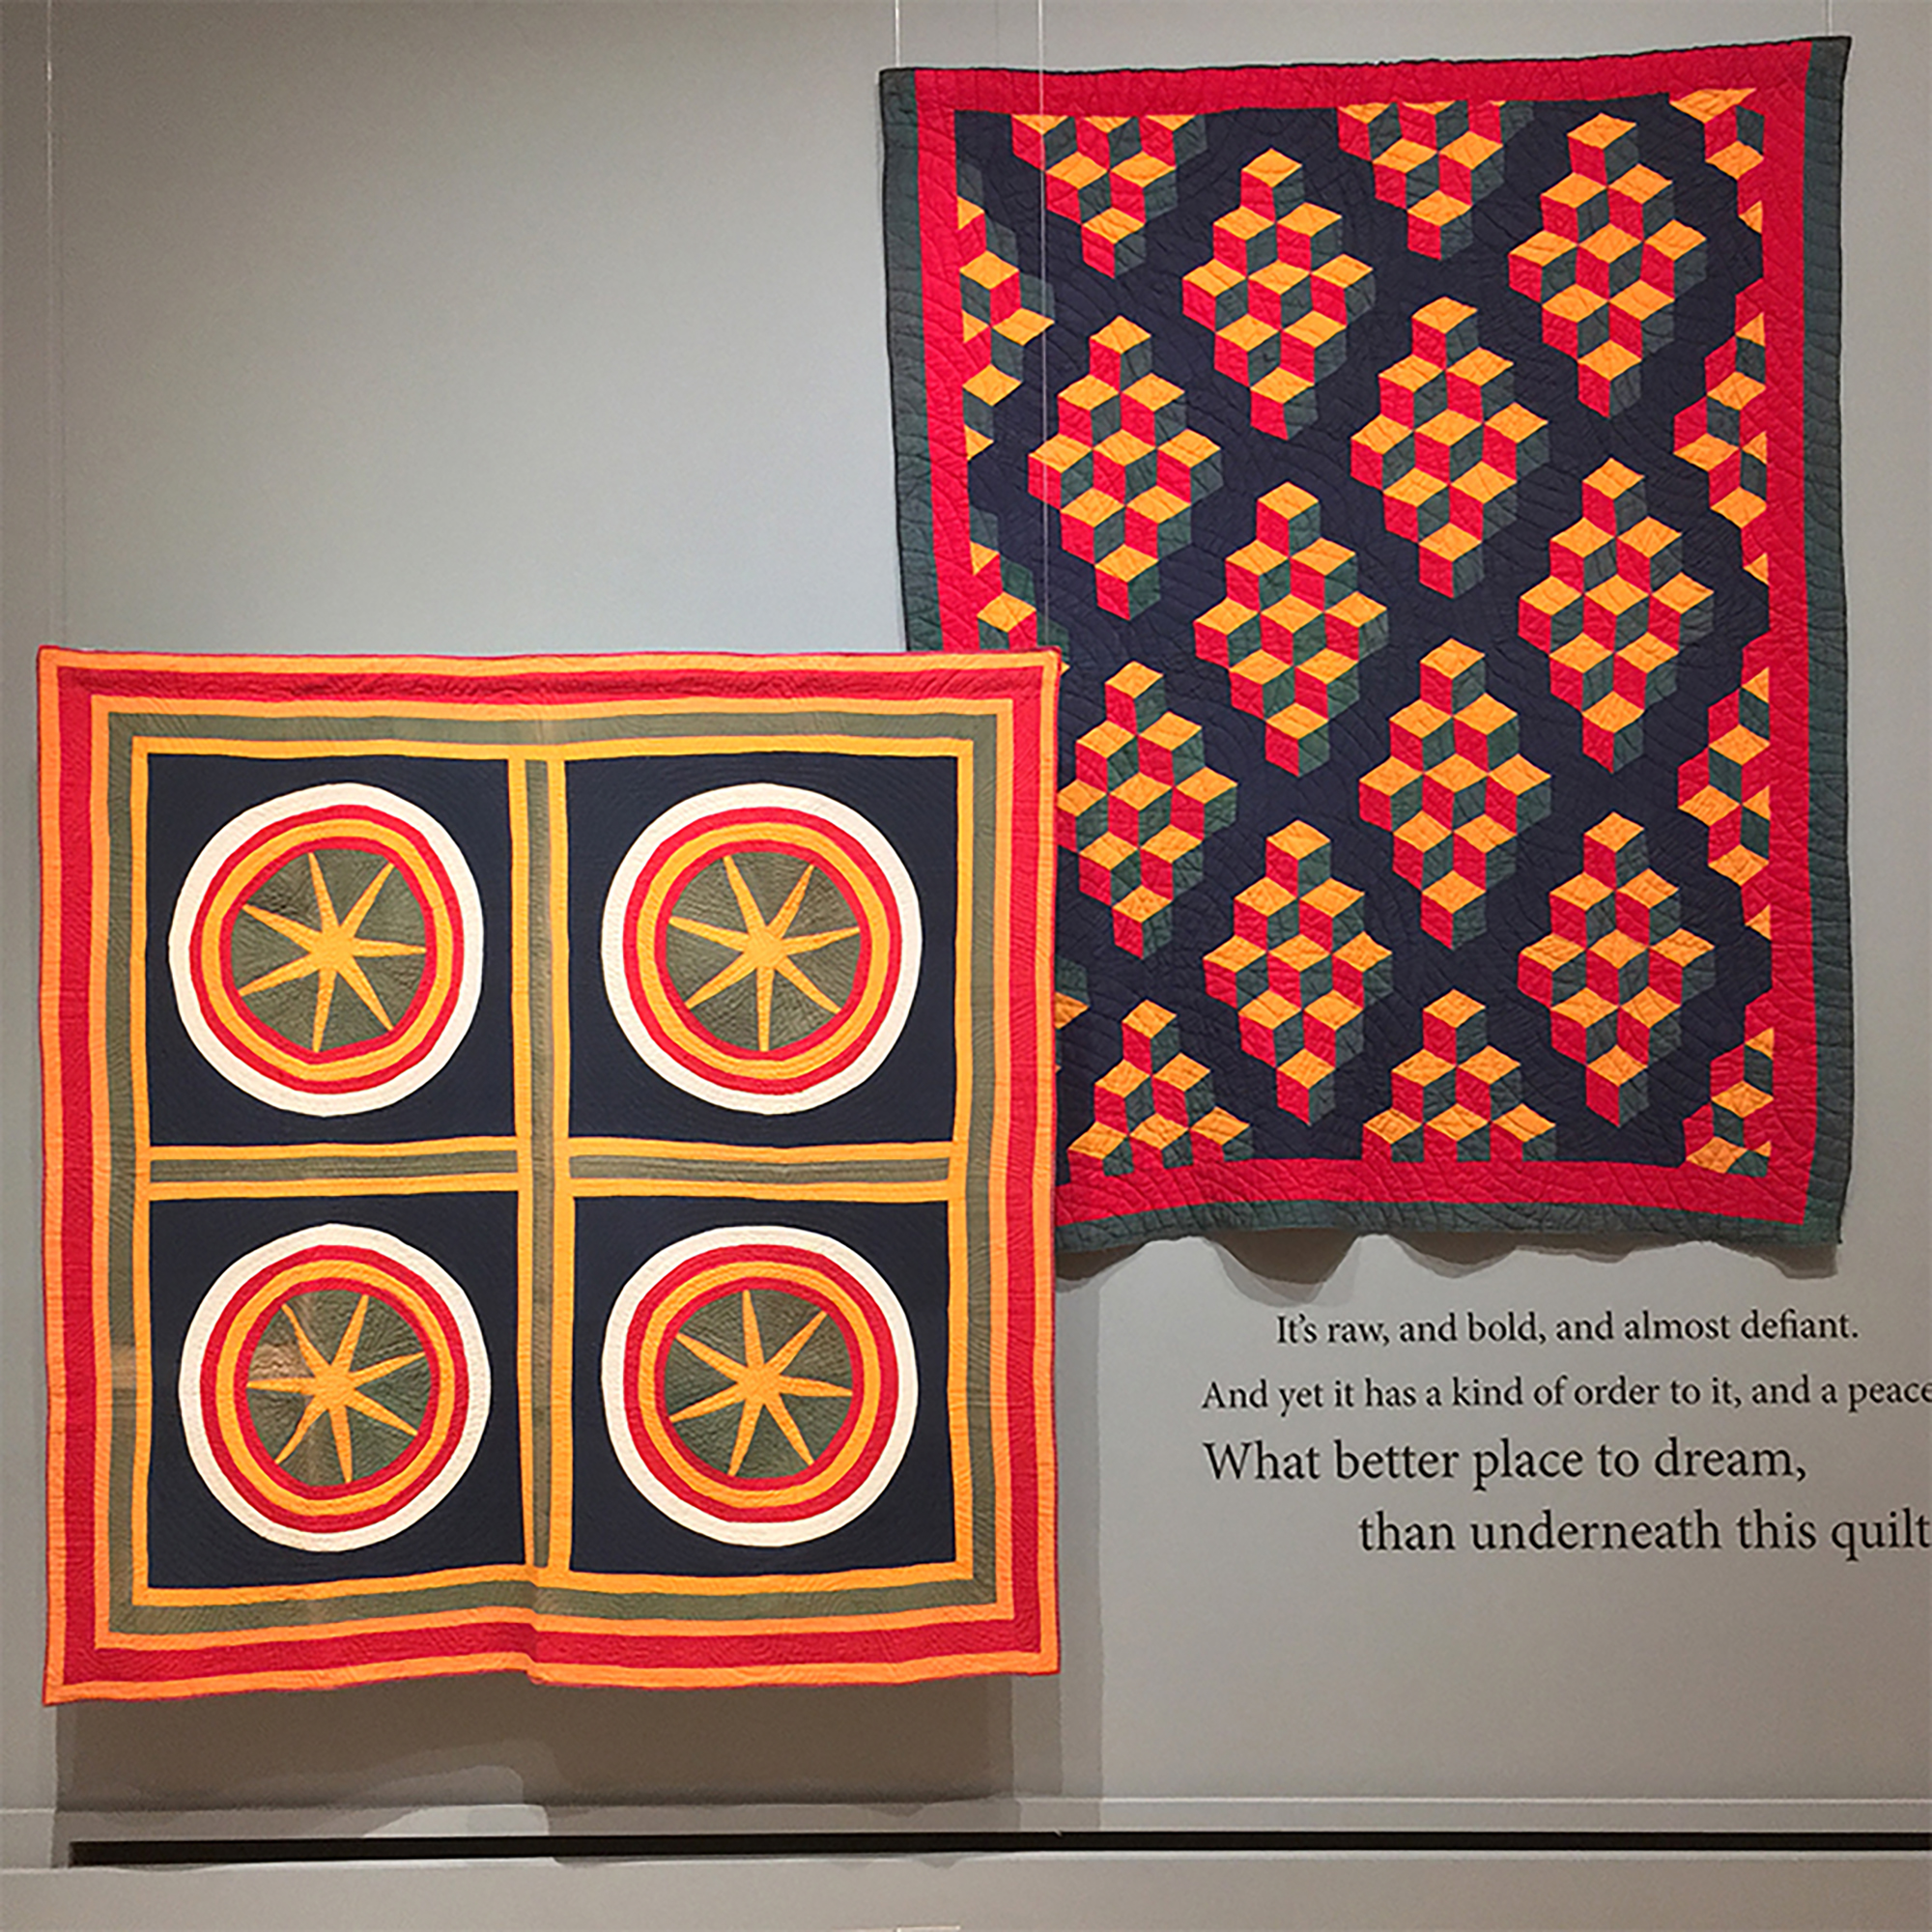 Two Ken Burns Quilts Displayed